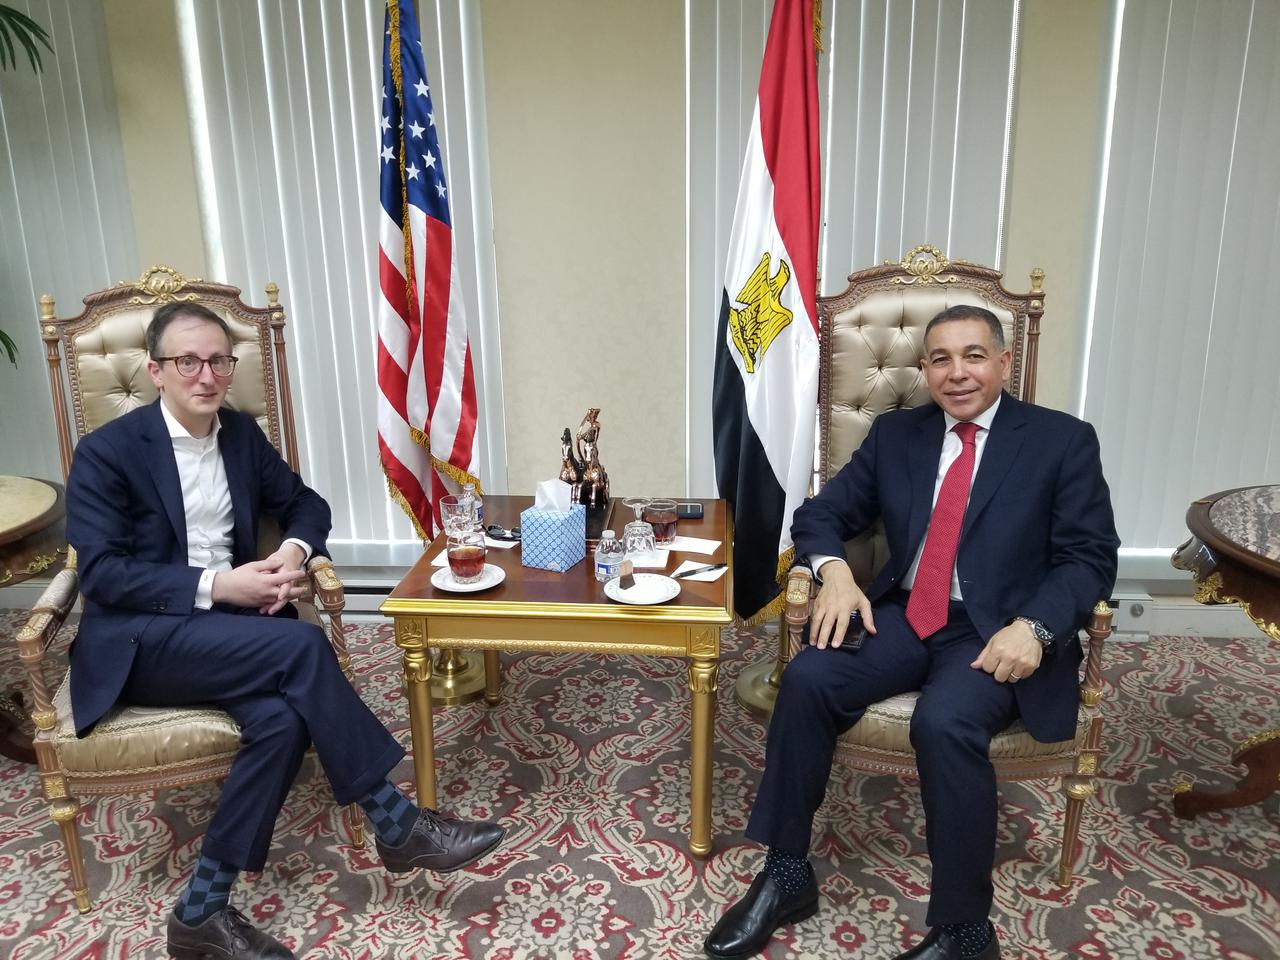 eli m. gold - mg mahmoud hasanin, egyptian military attache to u.s. and canada at defense office, wash d.c..jpg